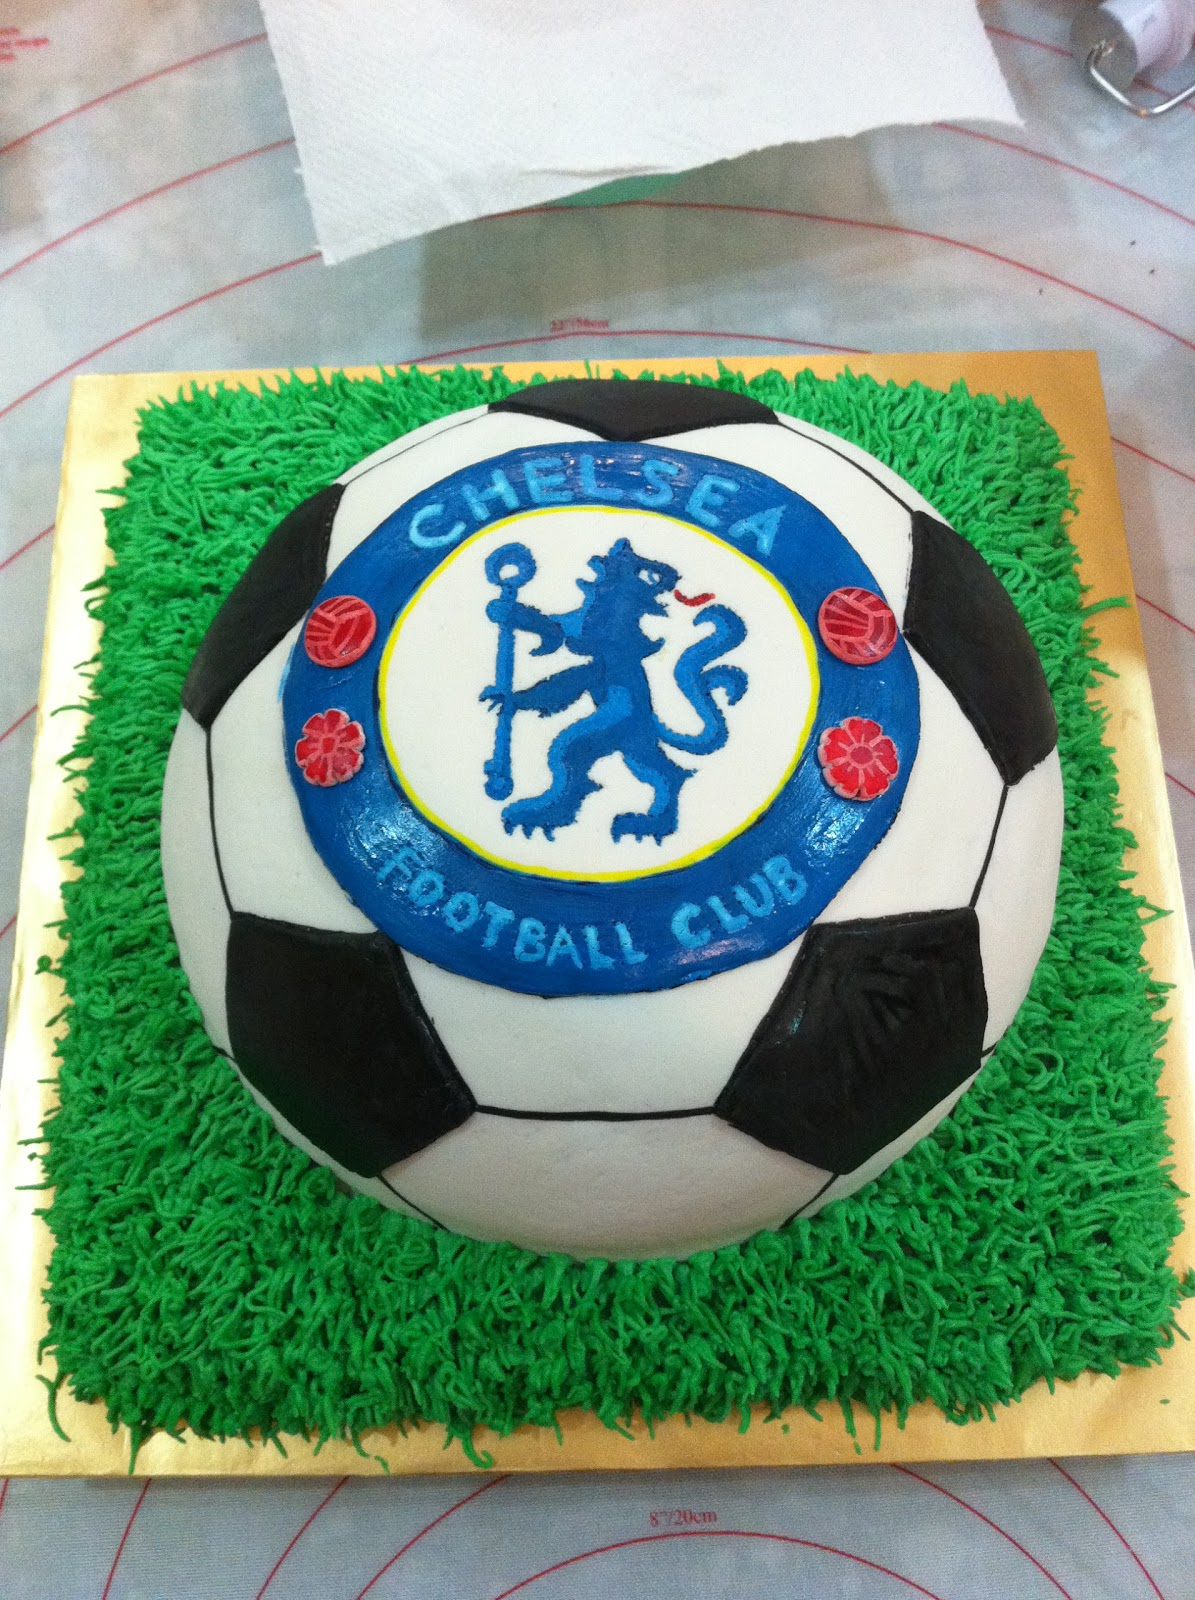 Home Mayde Cakes The making of Chelsea Soccer cake